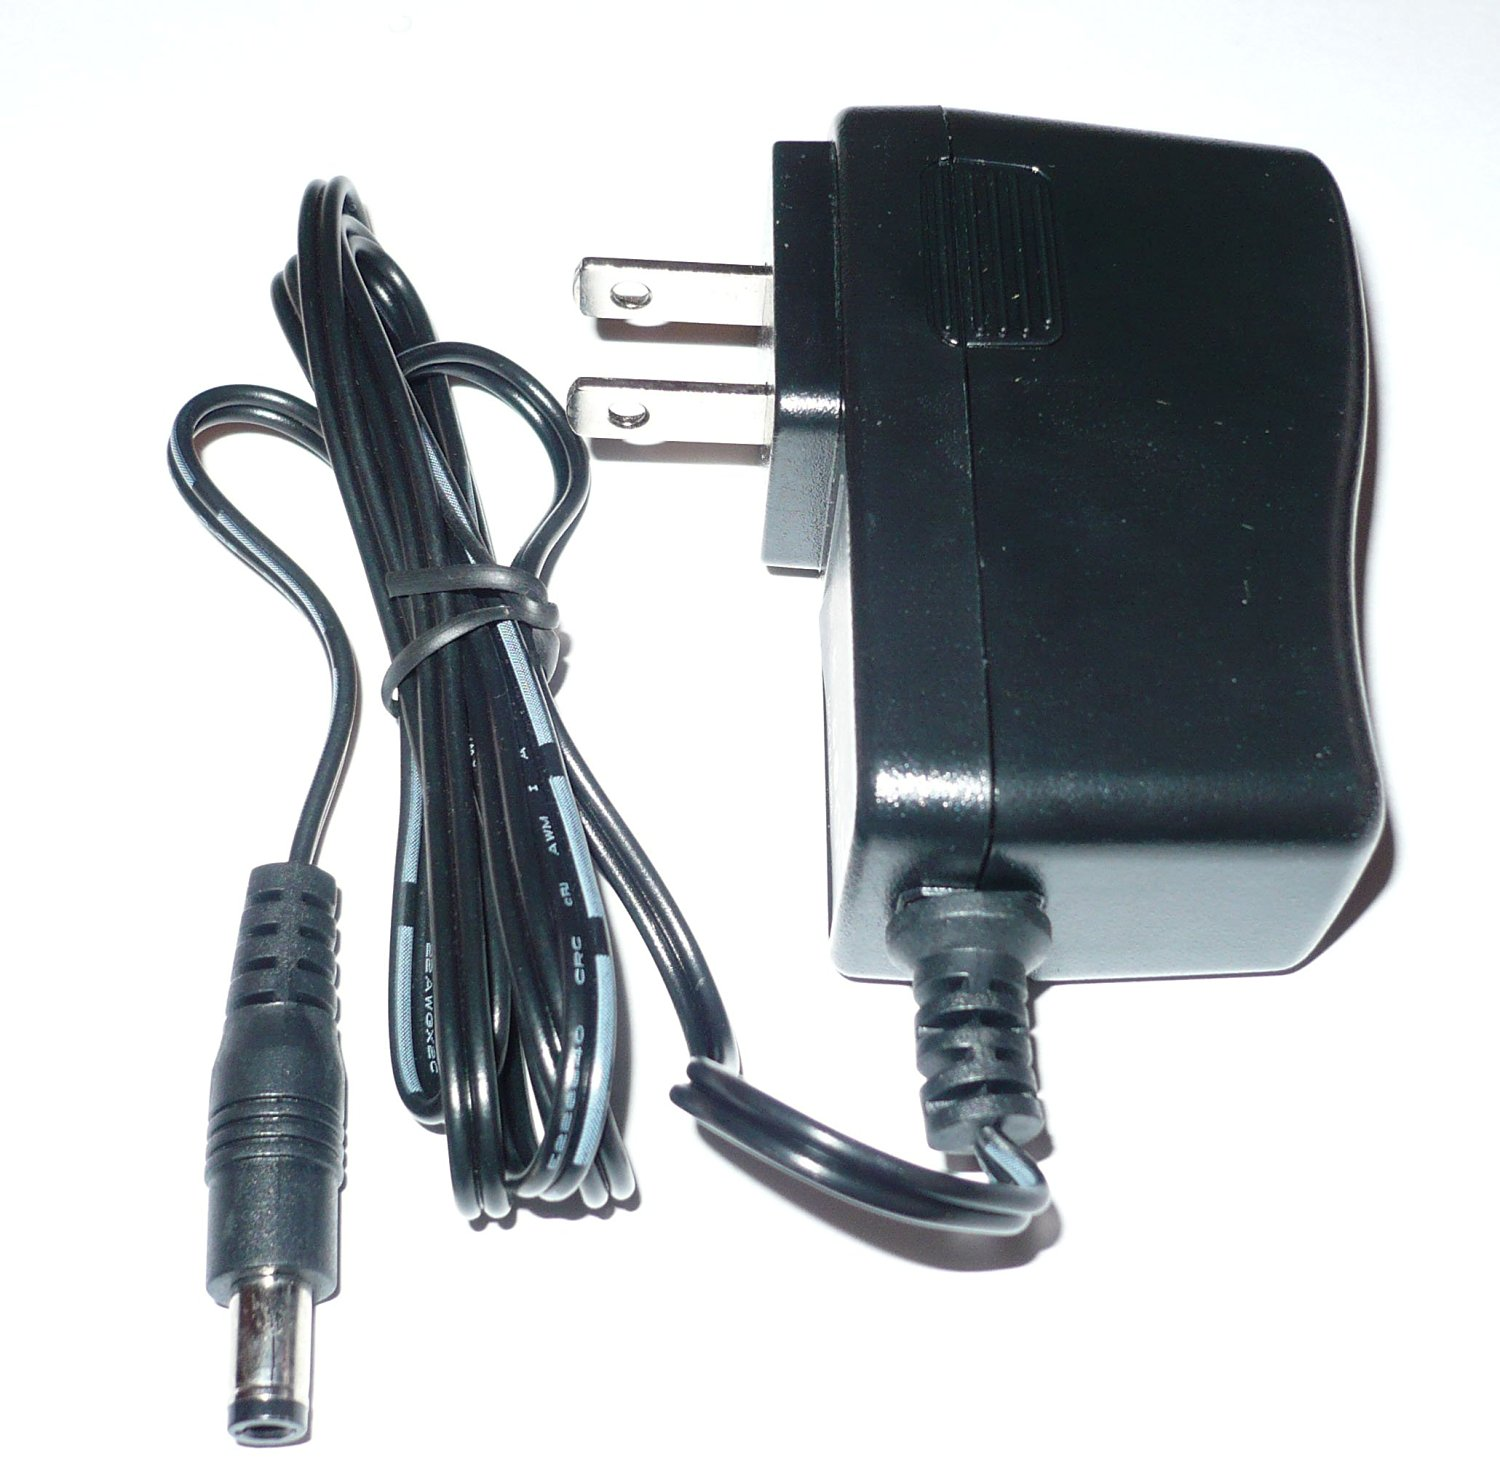 Cheap 2wire Adsl, find 2wire Adsl deals on line at Alibaba.com